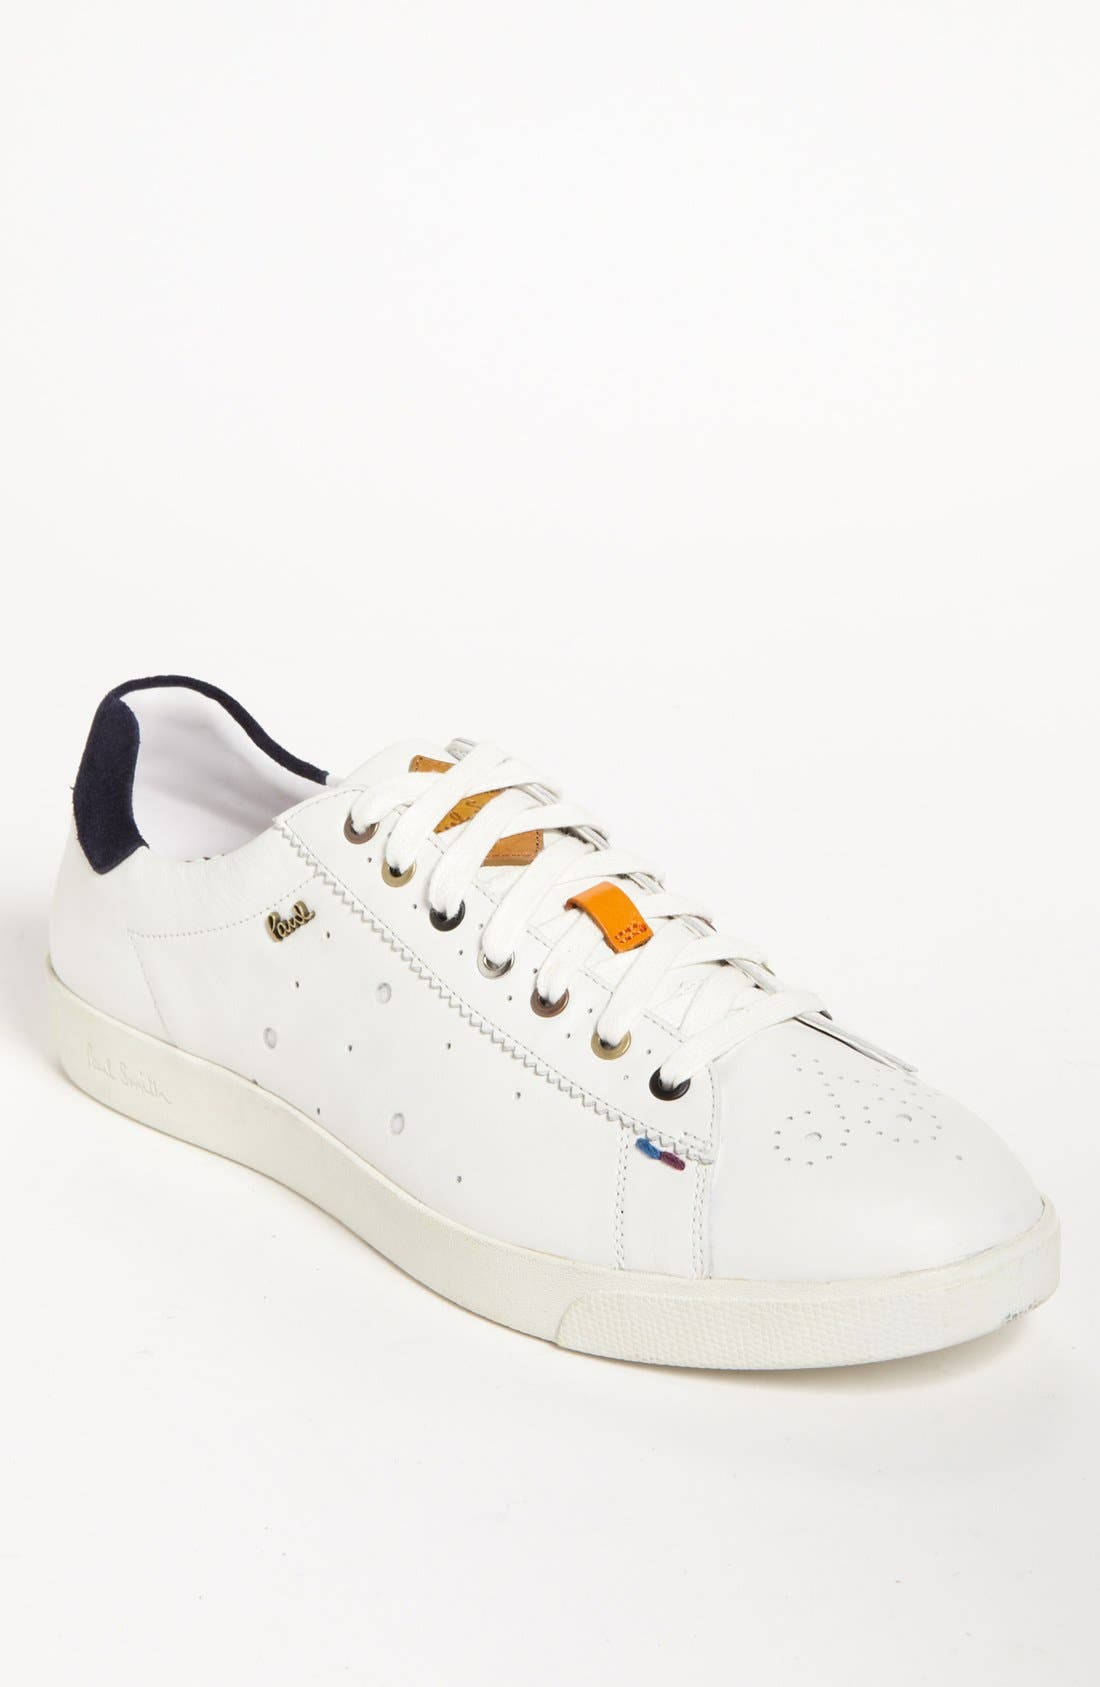 Main Image - Paul Smith 'Lepus' Sneaker